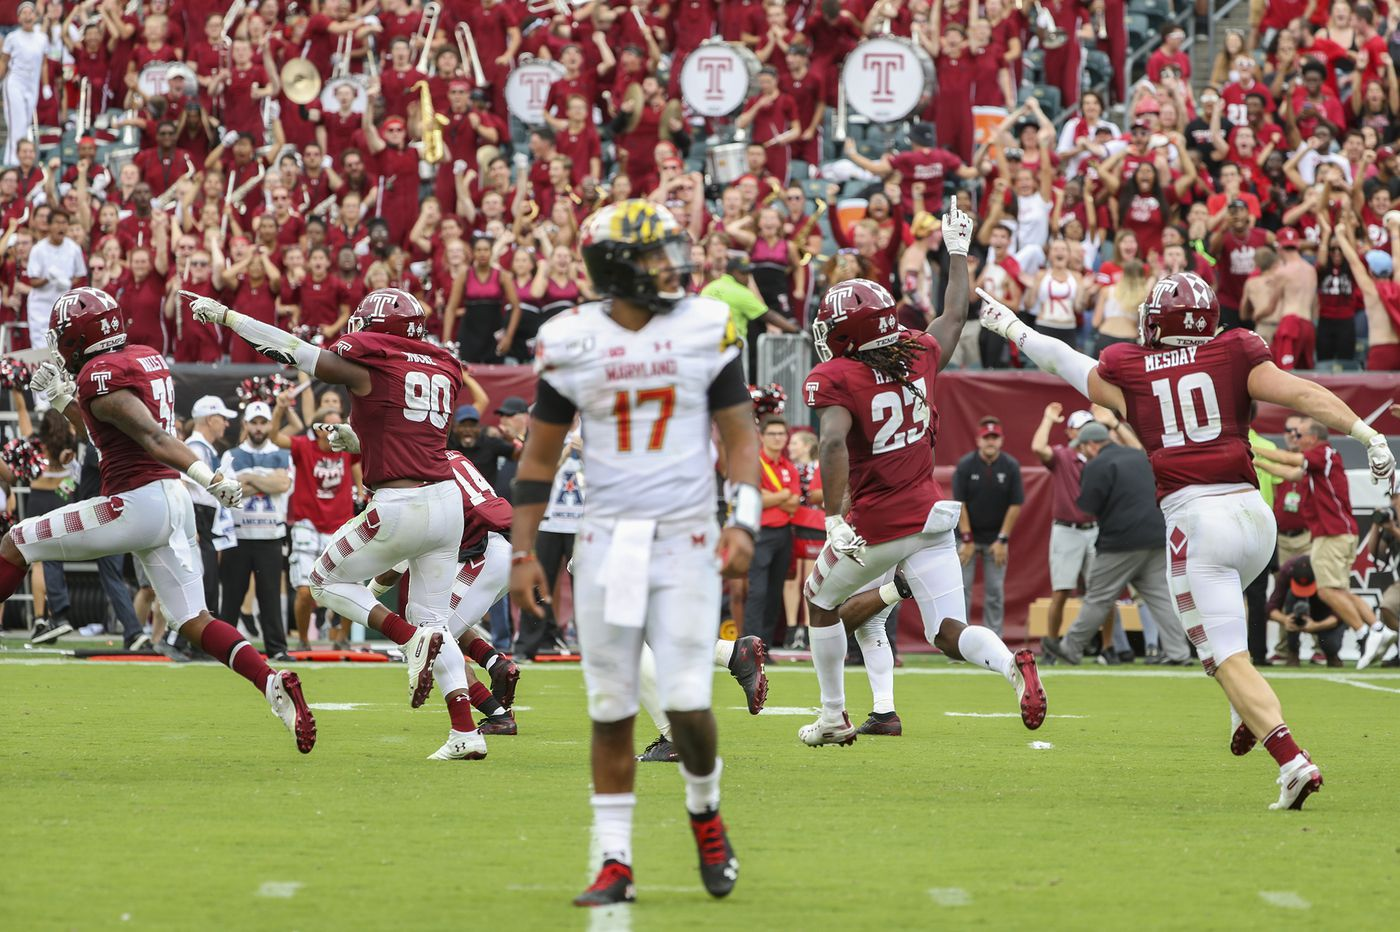 Temple's defense makes its stand against Maryland, again and again.